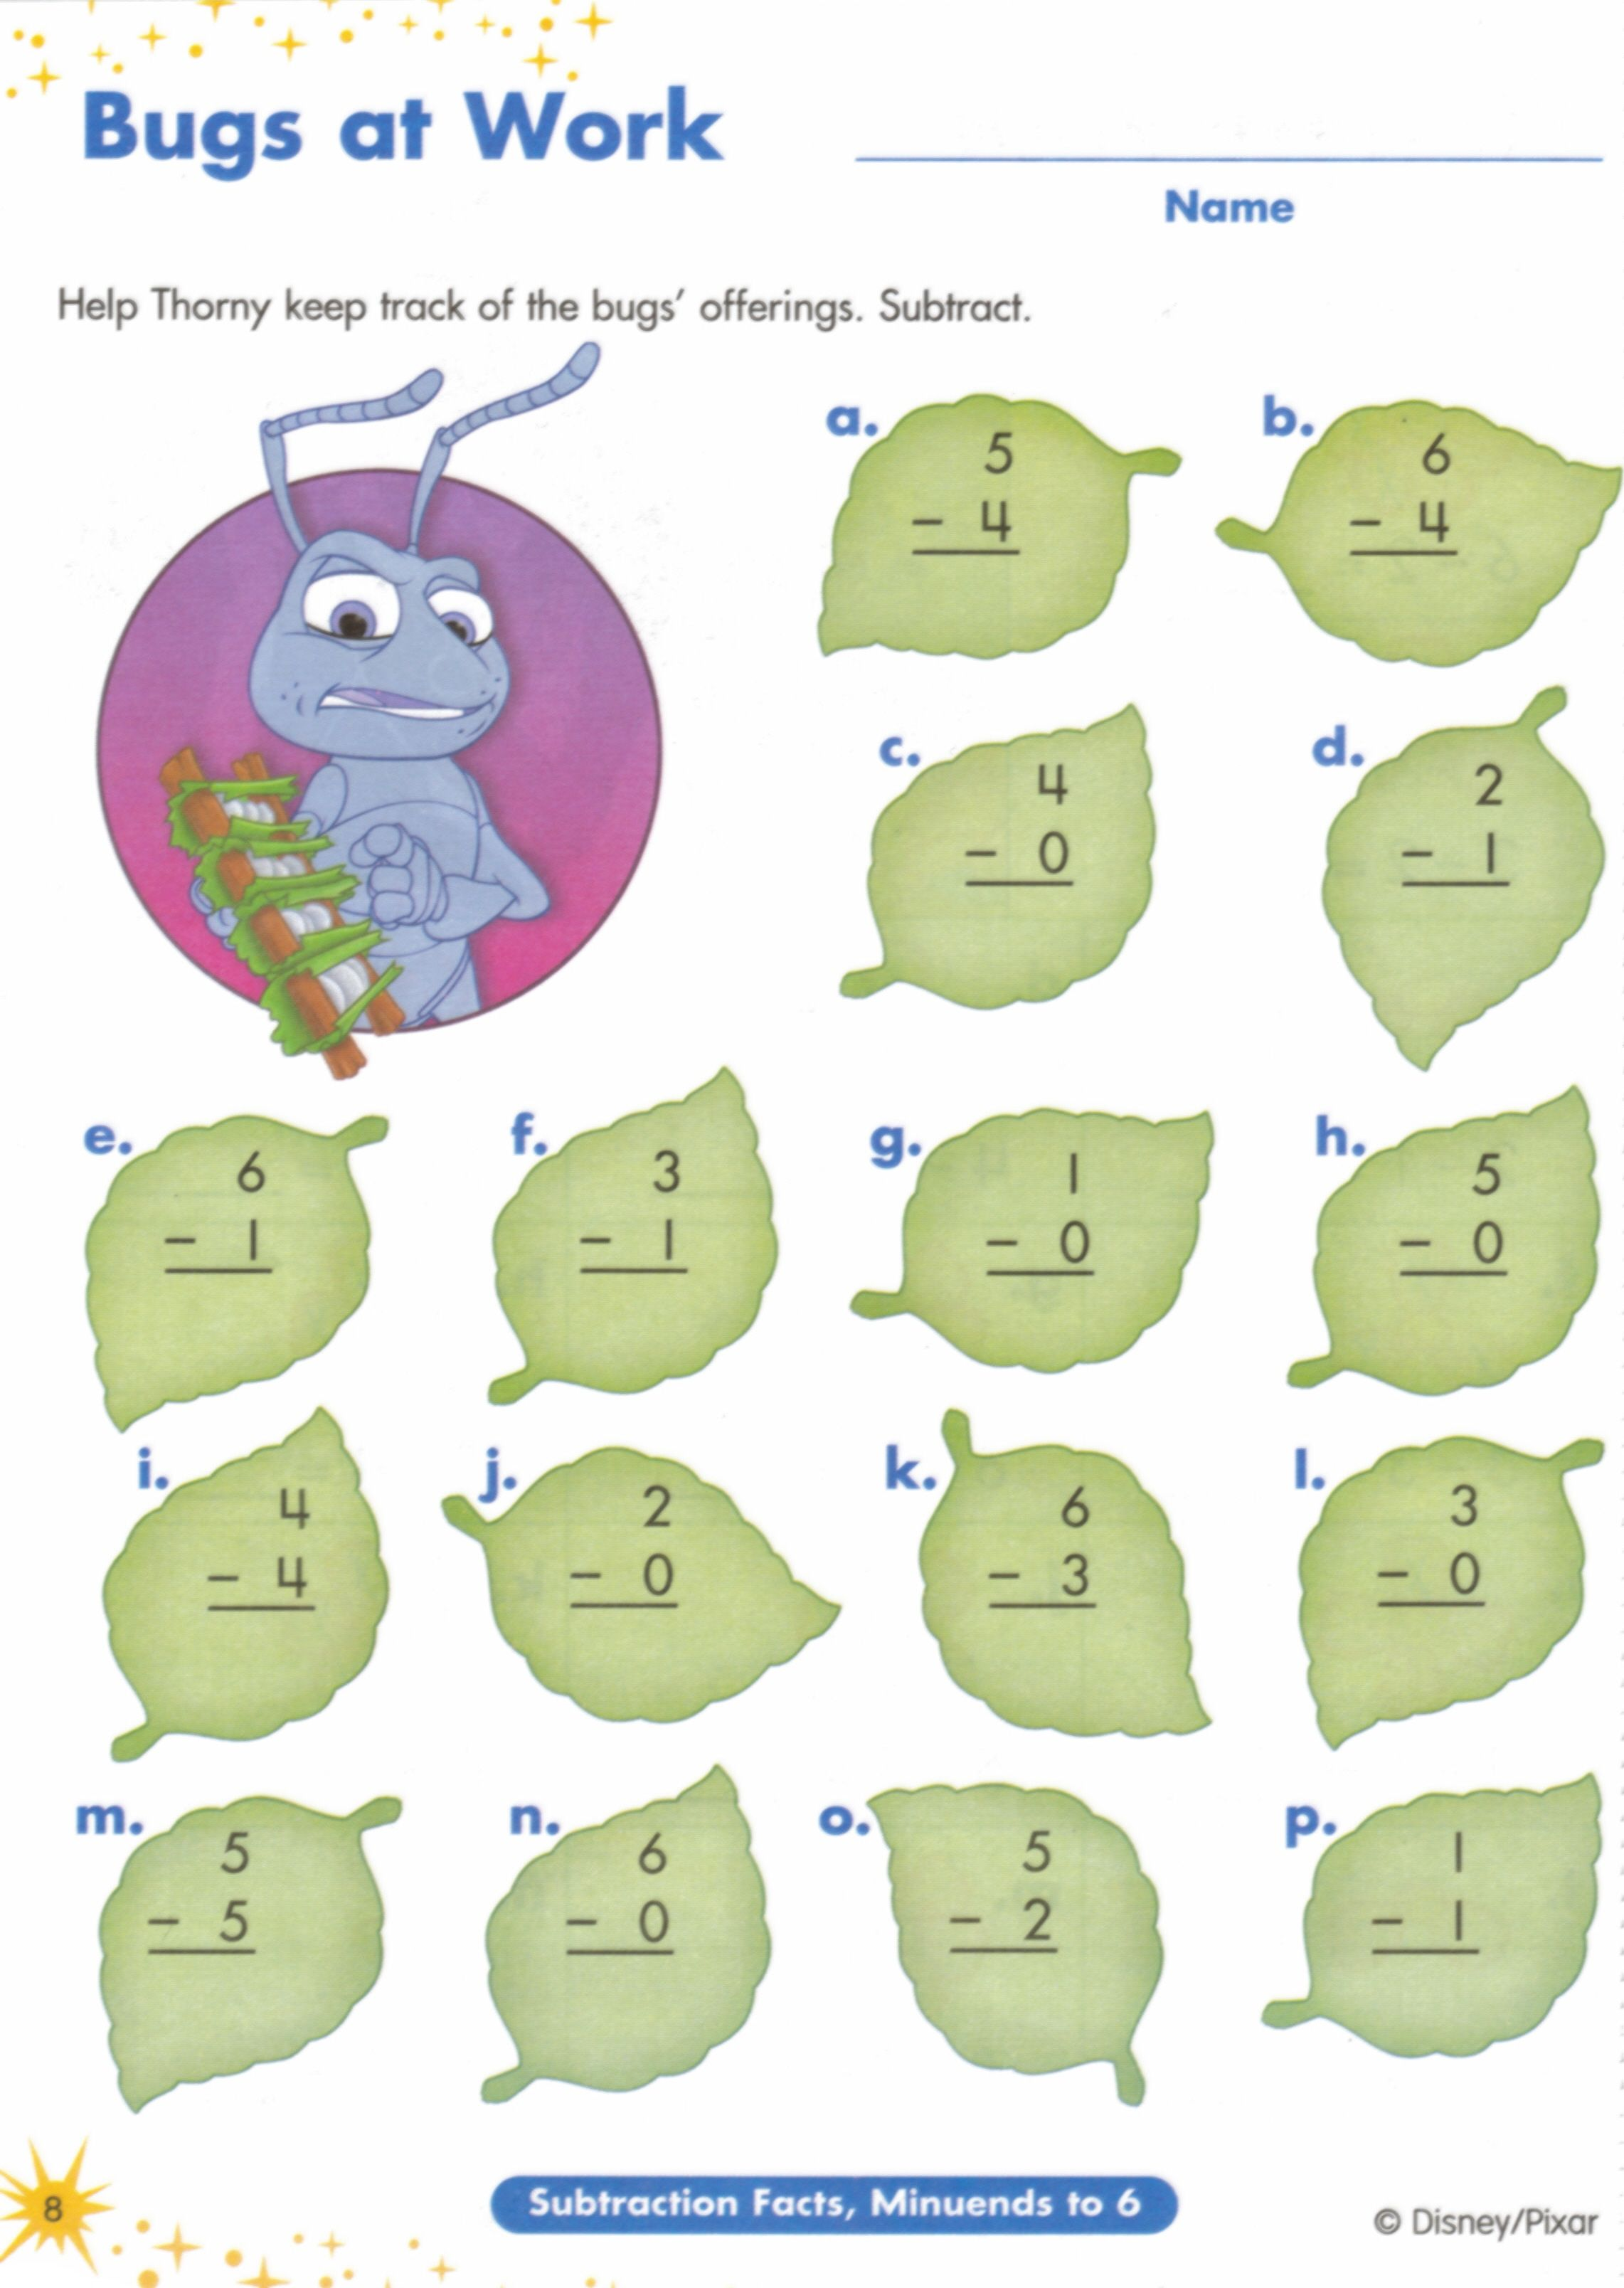 Proatmealus  Splendid  Images About Worksheets On Pinterest  Fun Facts For Kids  With Handsome  Images About Worksheets On Pinterest  Fun Facts For Kids Earth Day Worksheets And Jungles With Nice Map Of Australia Worksheet Also Math Pythagorean Theorem Worksheets In Addition Grade  Printable Worksheets And Maths Worksheets Ks As Well As Multiplications And Division Worksheets Additionally Worksheet In Spreadsheet From Pinterestcom With Proatmealus  Handsome  Images About Worksheets On Pinterest  Fun Facts For Kids  With Nice  Images About Worksheets On Pinterest  Fun Facts For Kids Earth Day Worksheets And Jungles And Splendid Map Of Australia Worksheet Also Math Pythagorean Theorem Worksheets In Addition Grade  Printable Worksheets From Pinterestcom